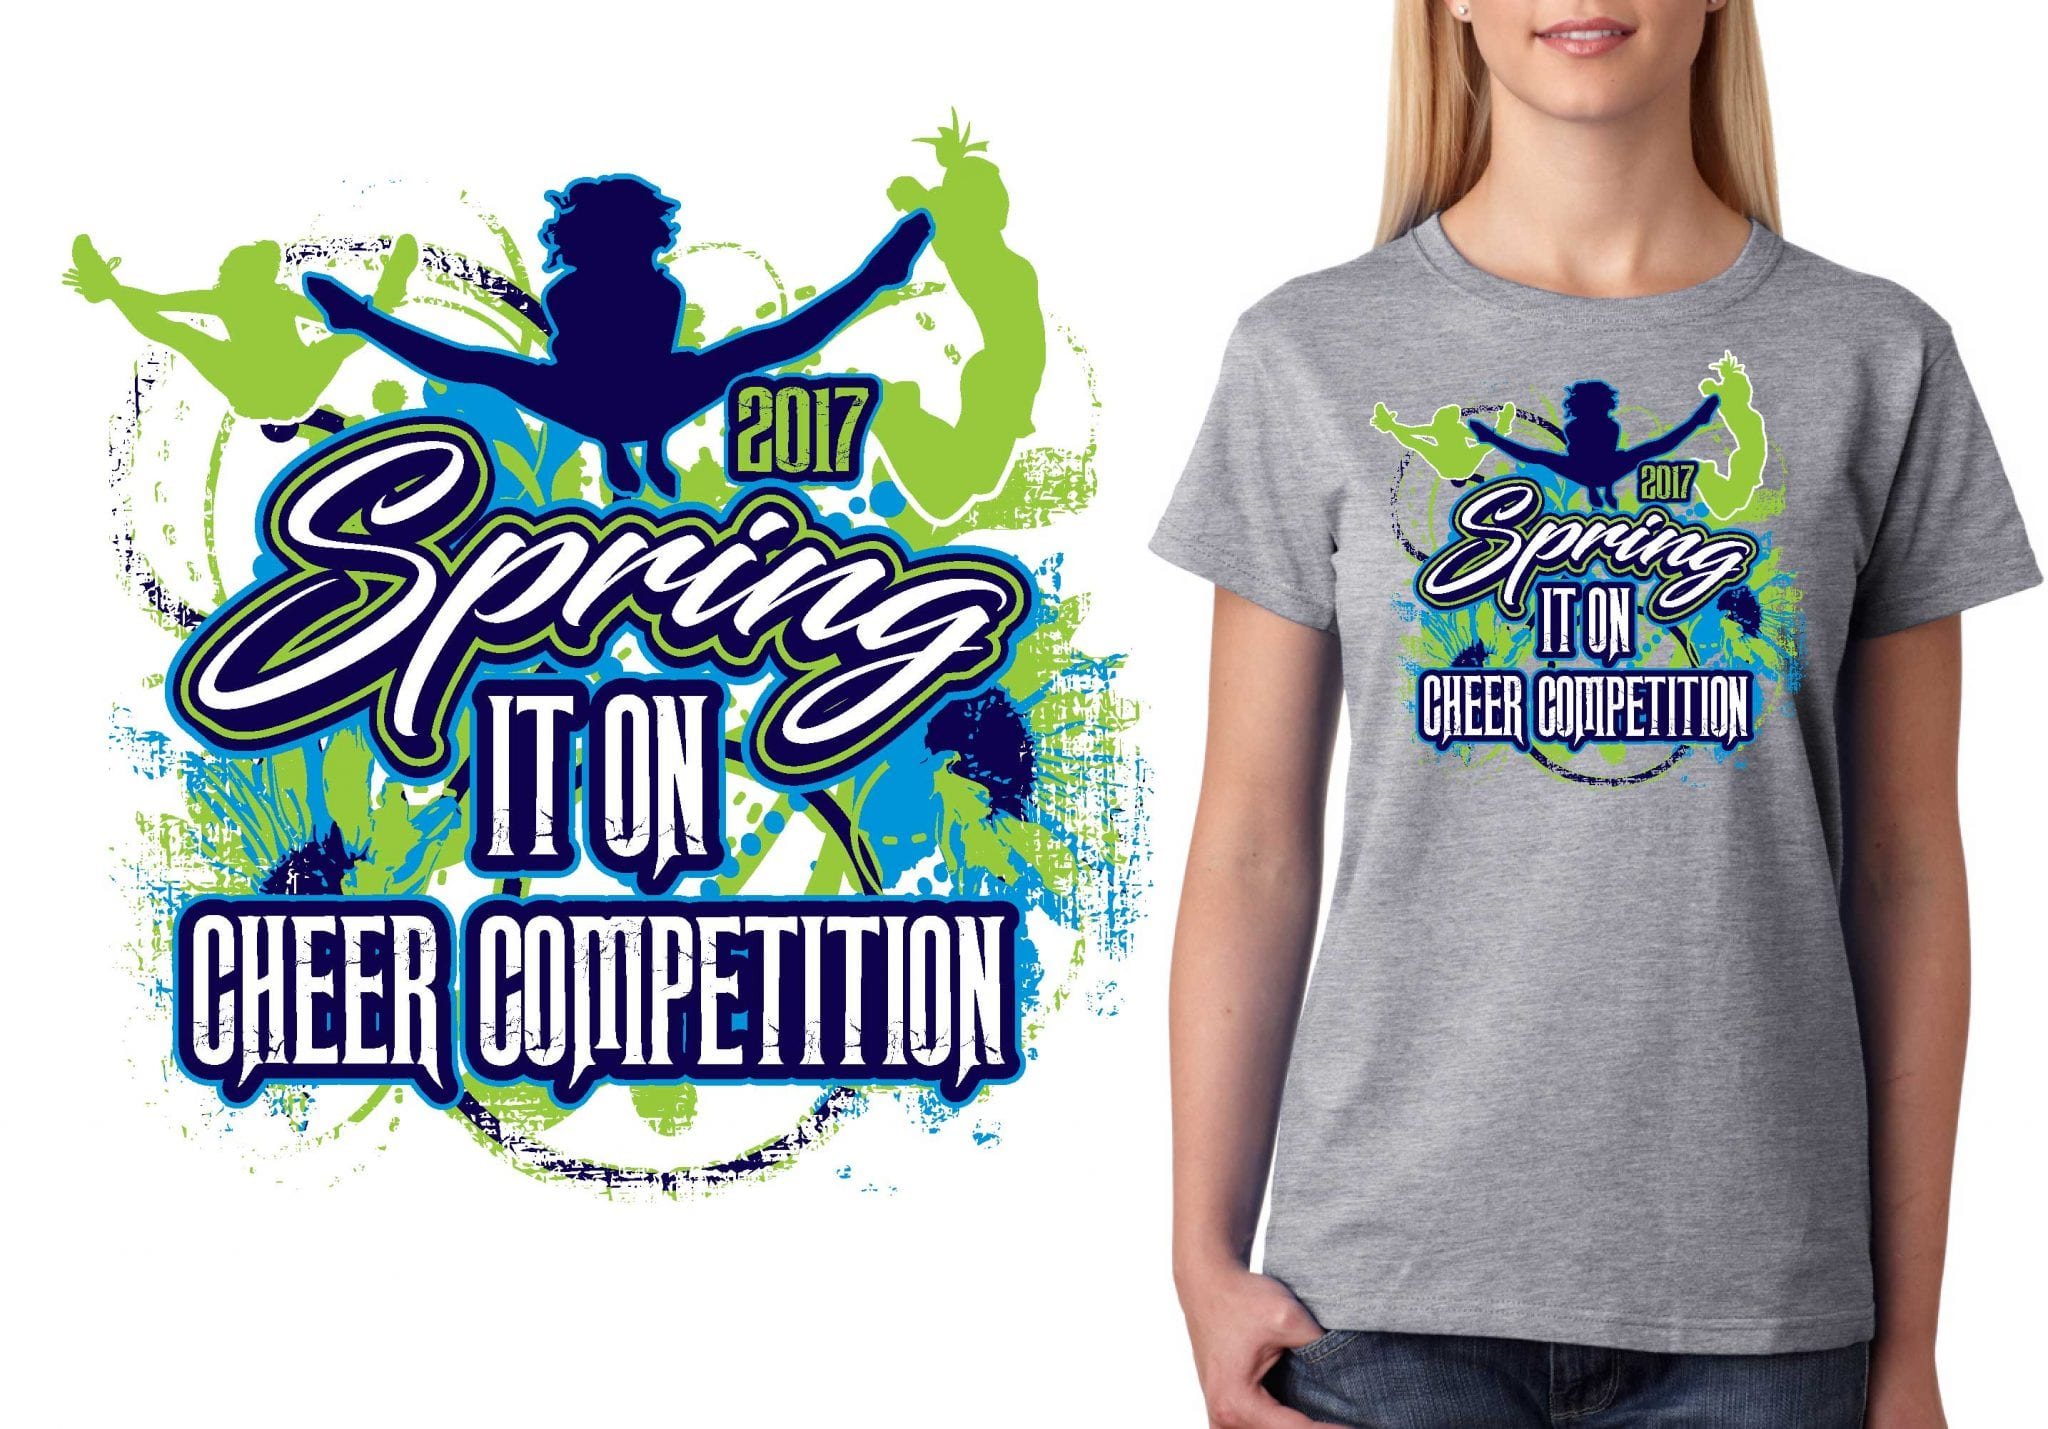 CHEER T SHIRT LOGO DESIGN Cheers Spring It On BY UrArtStudio